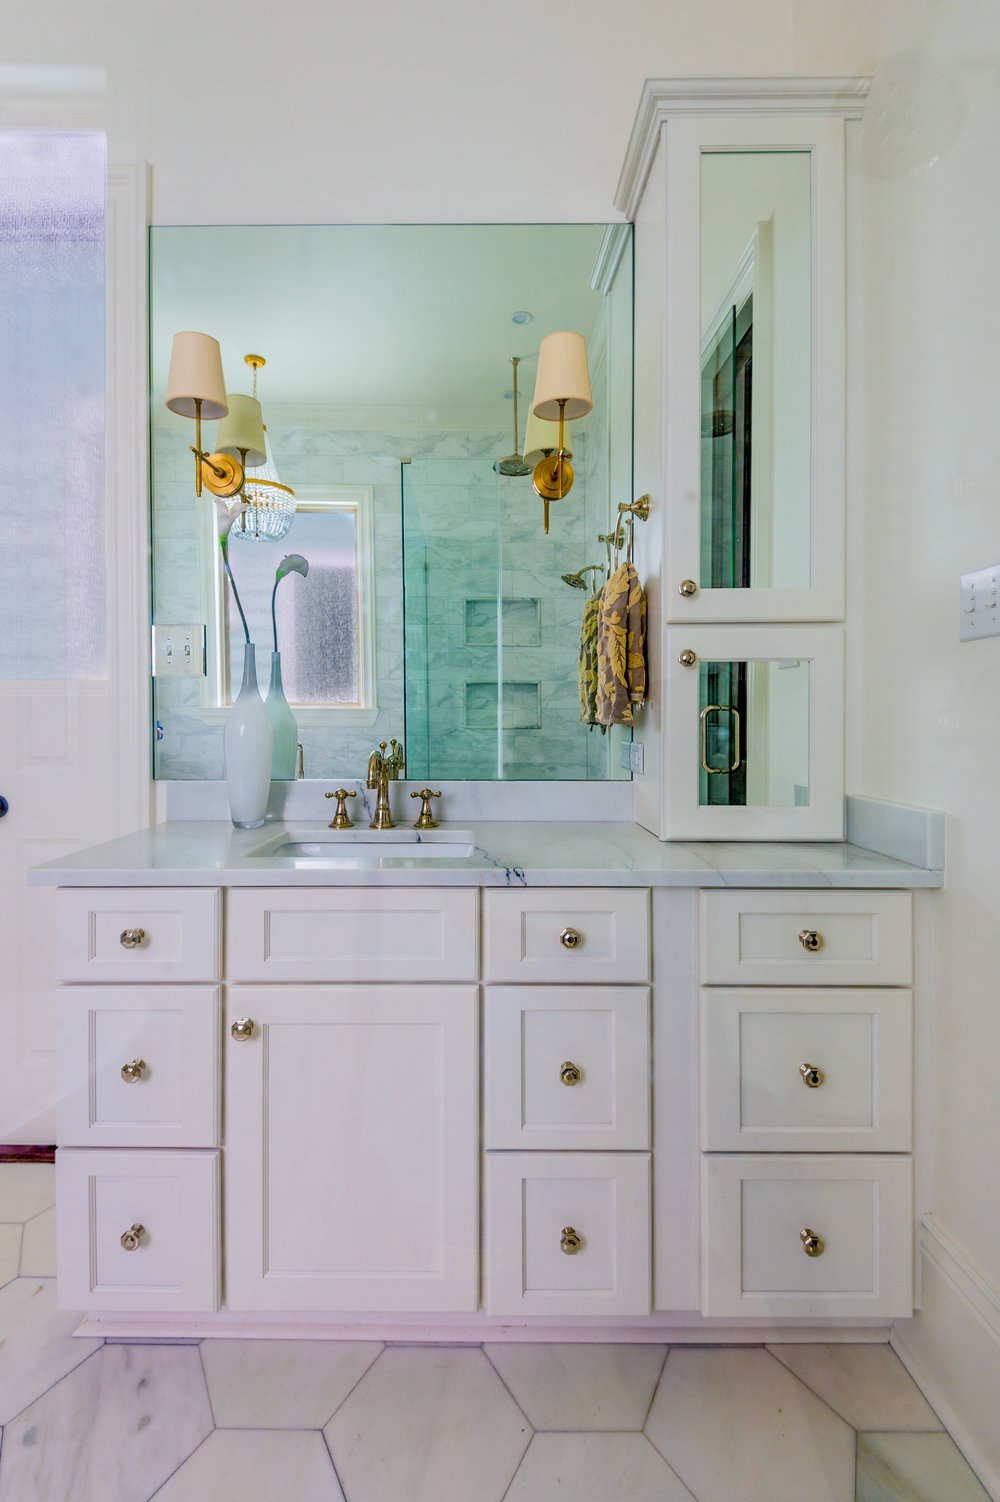 KHB Interiors new orleans interior designer old metairie interior decorator master bathroom vanity new construction lakeview new orleans holl .jpg